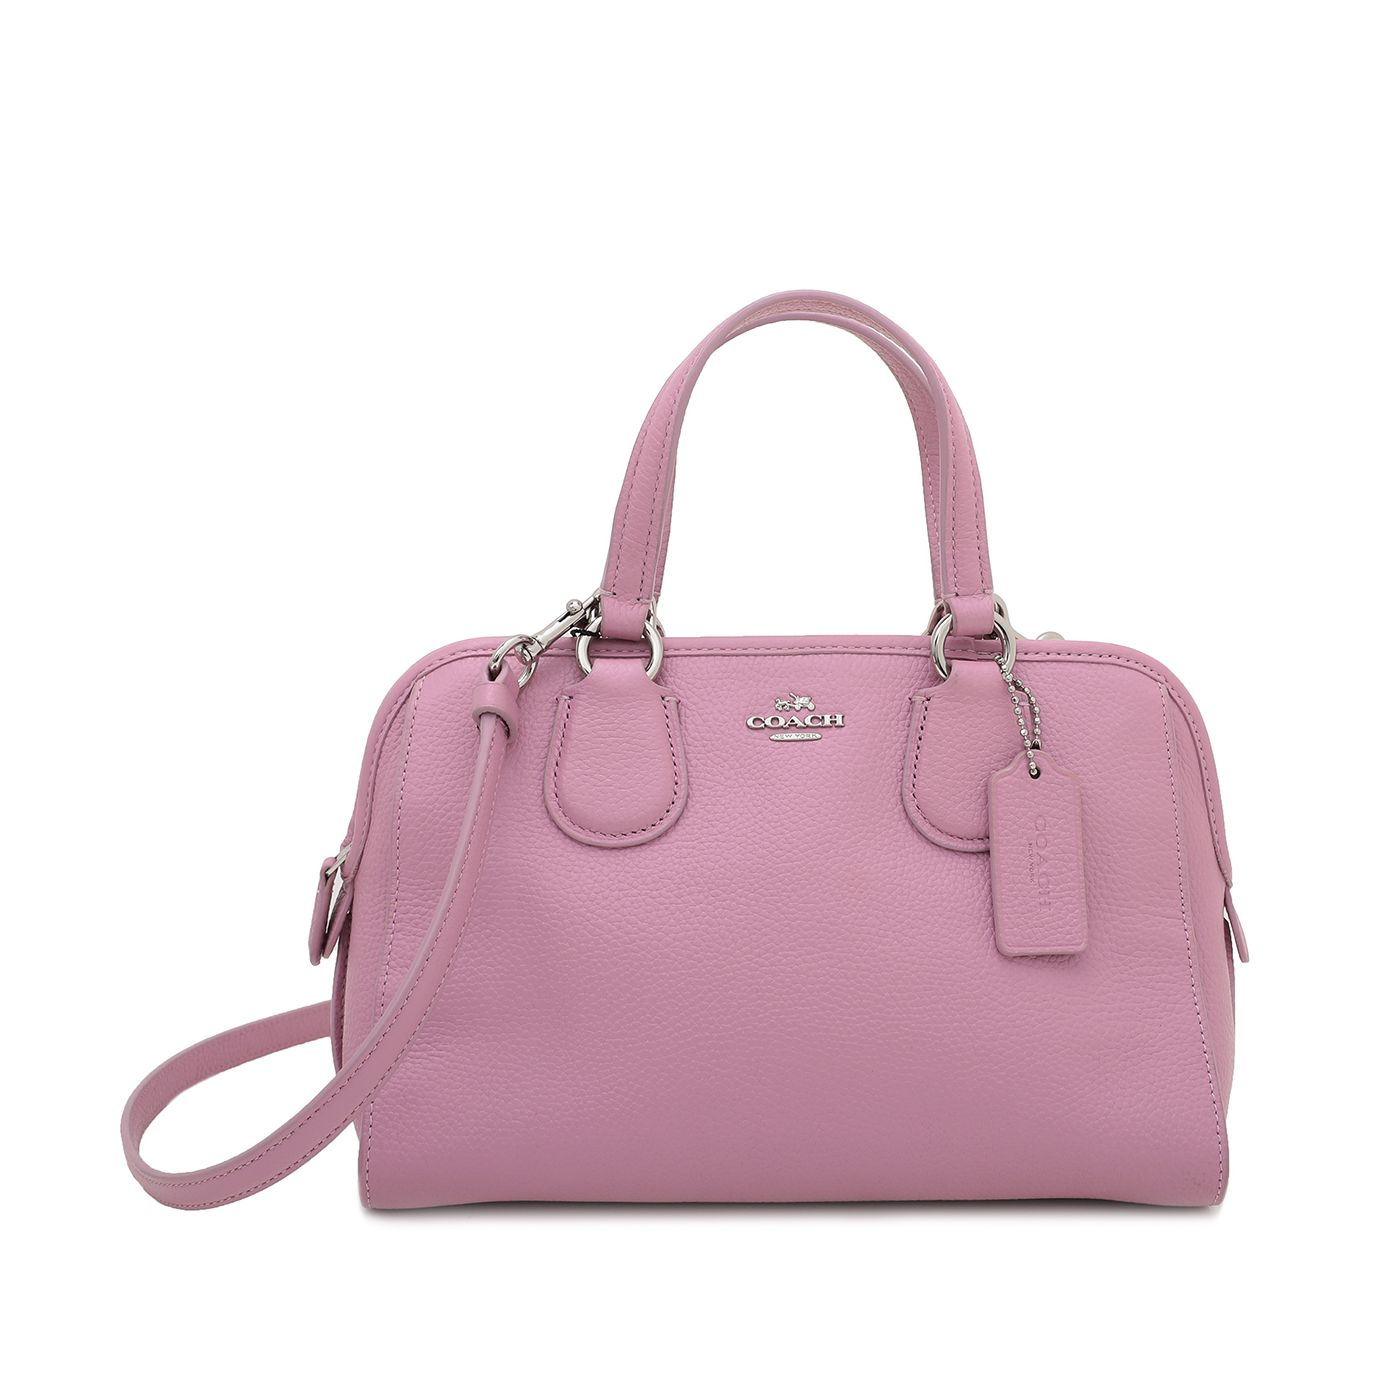 Coach Pink Small Satchel Bag